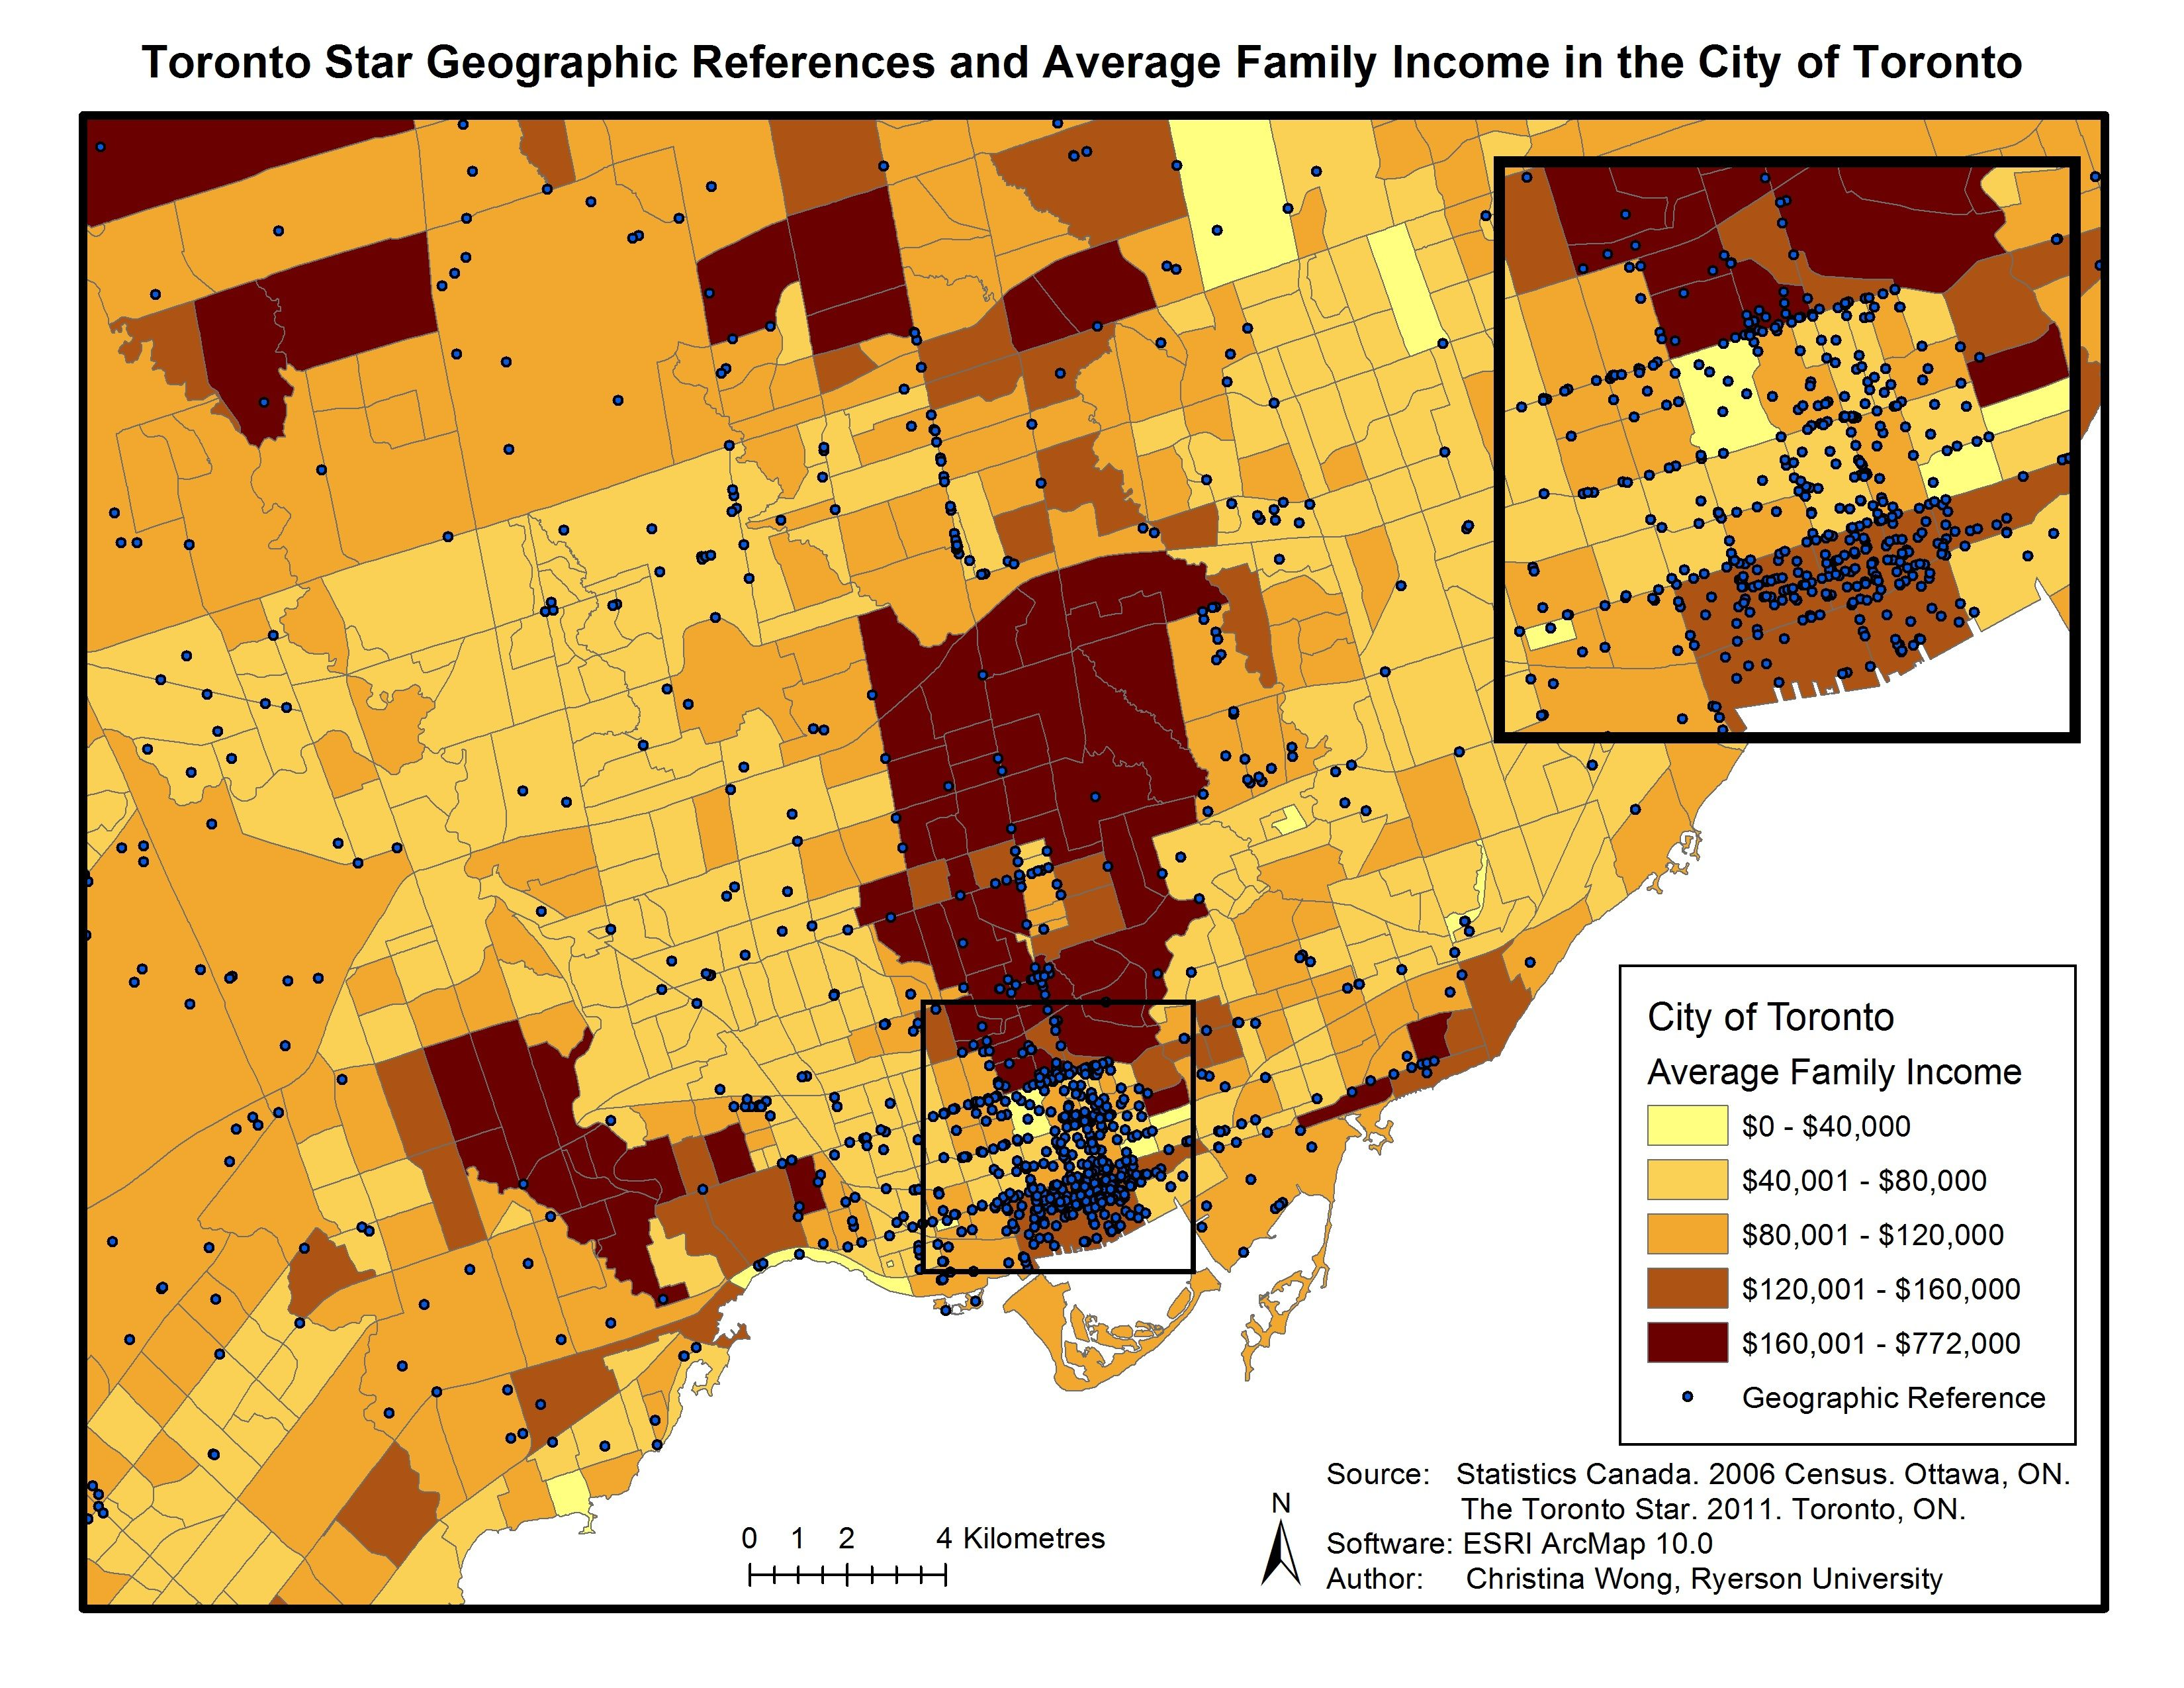 Figure 4. Toronto Star coverage and average family income